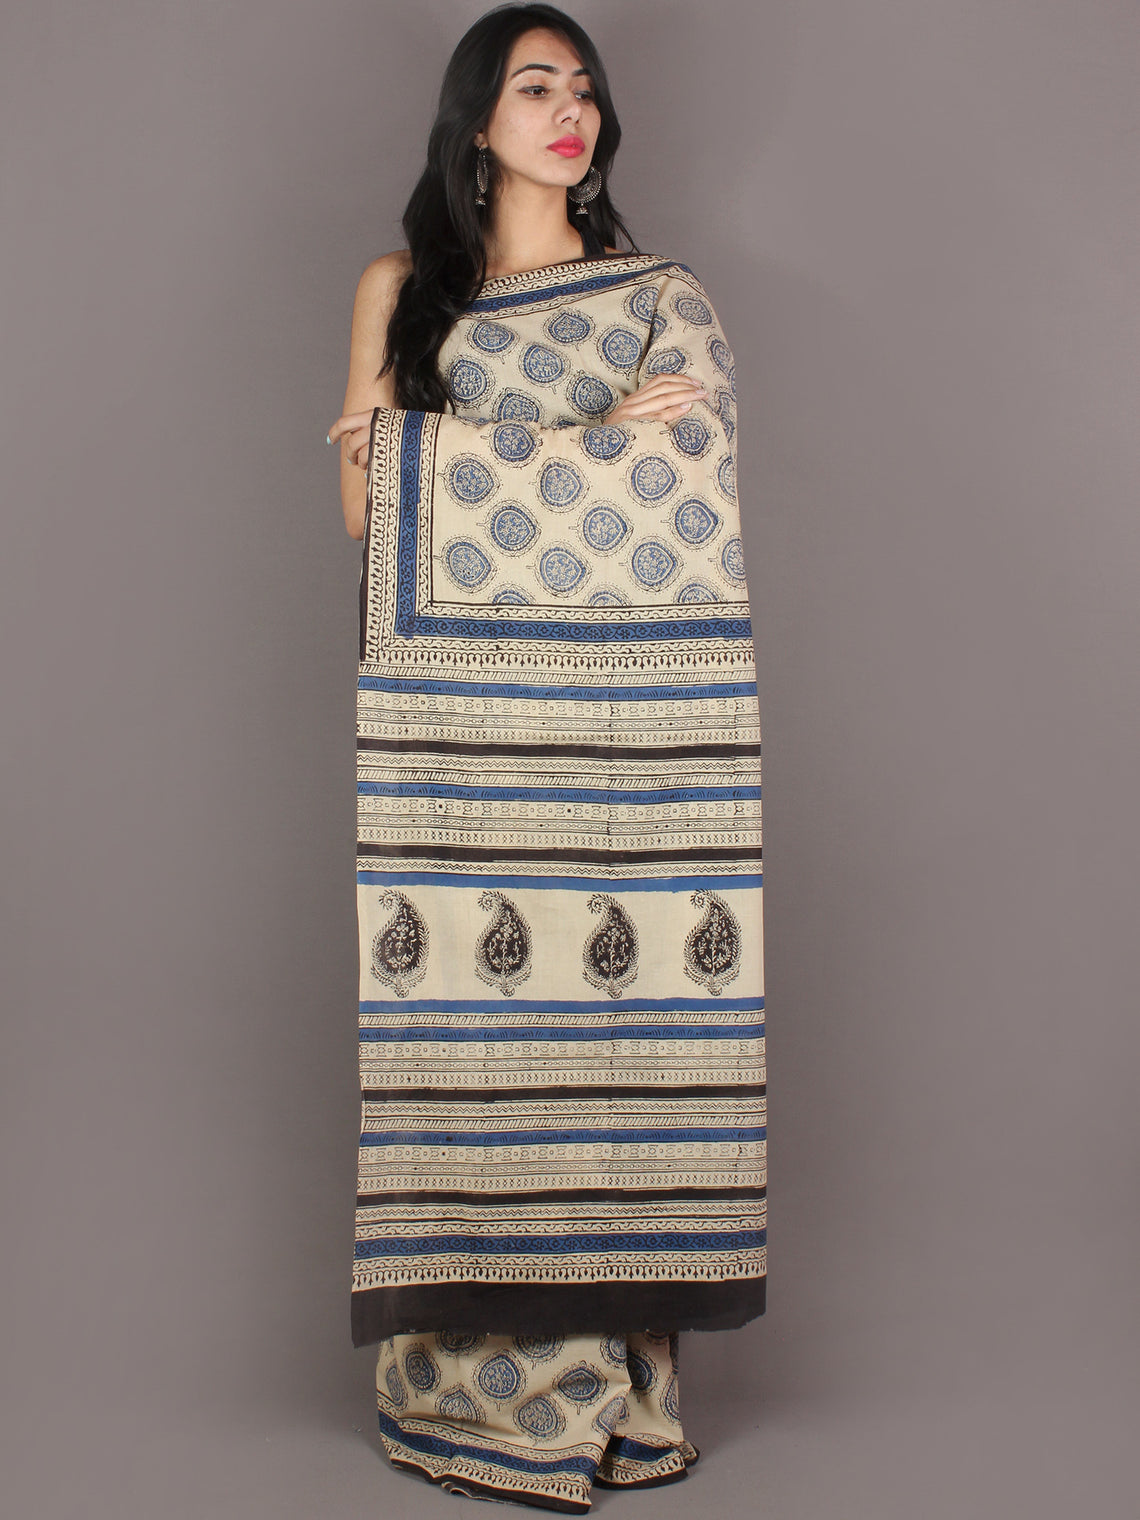 Ivory Indigo Black Hand Block Printed in Natural Colors Cotton Mul Saree - S03170940